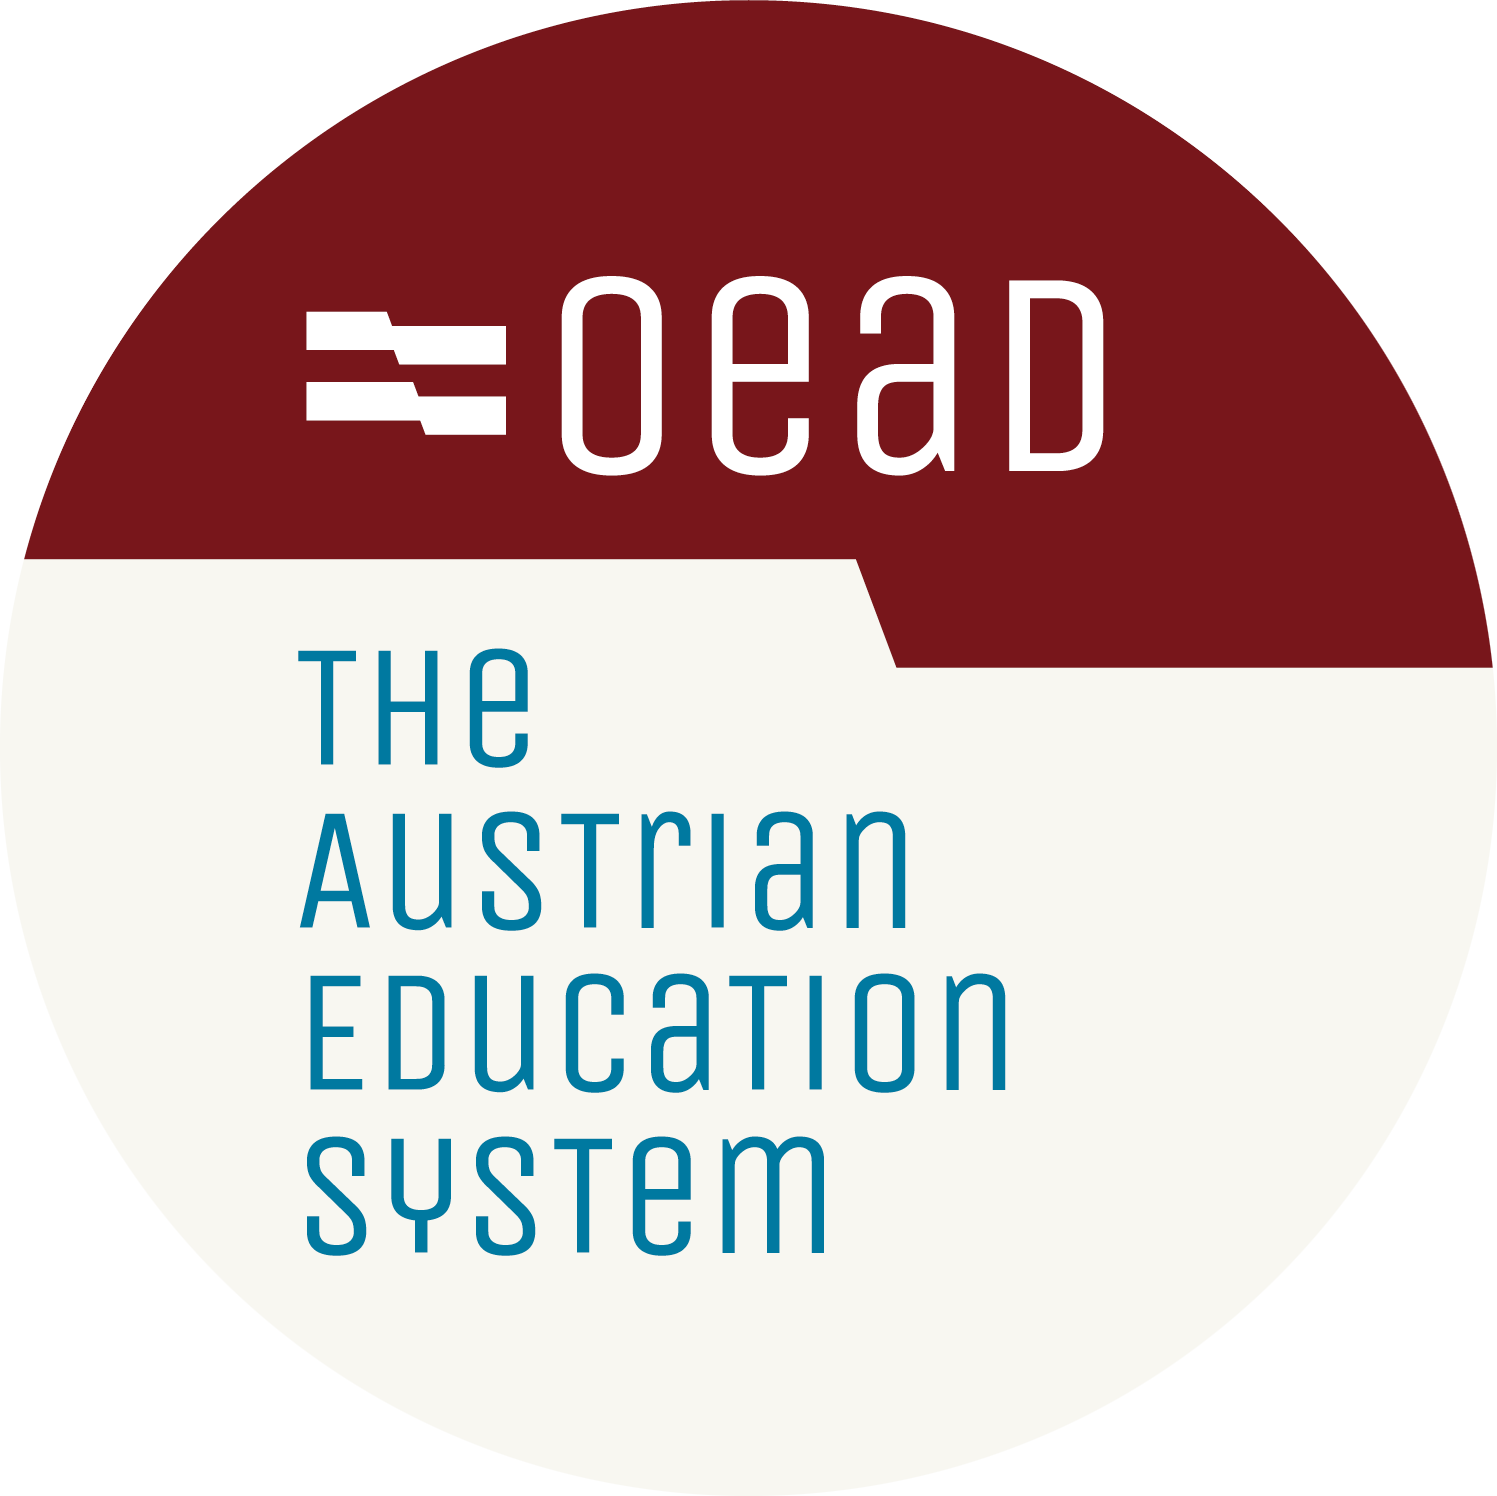 Logo: The austrian education system